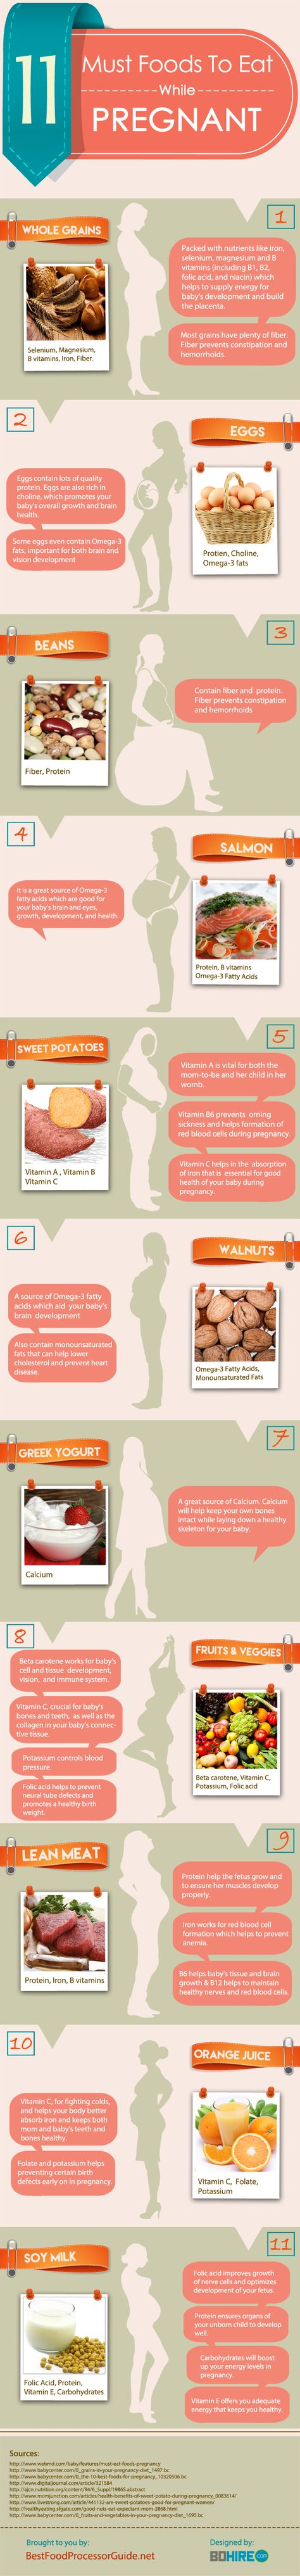 11 Must Foods To Eat While Pregnant #Infographic #Food #Health #Pregnancy